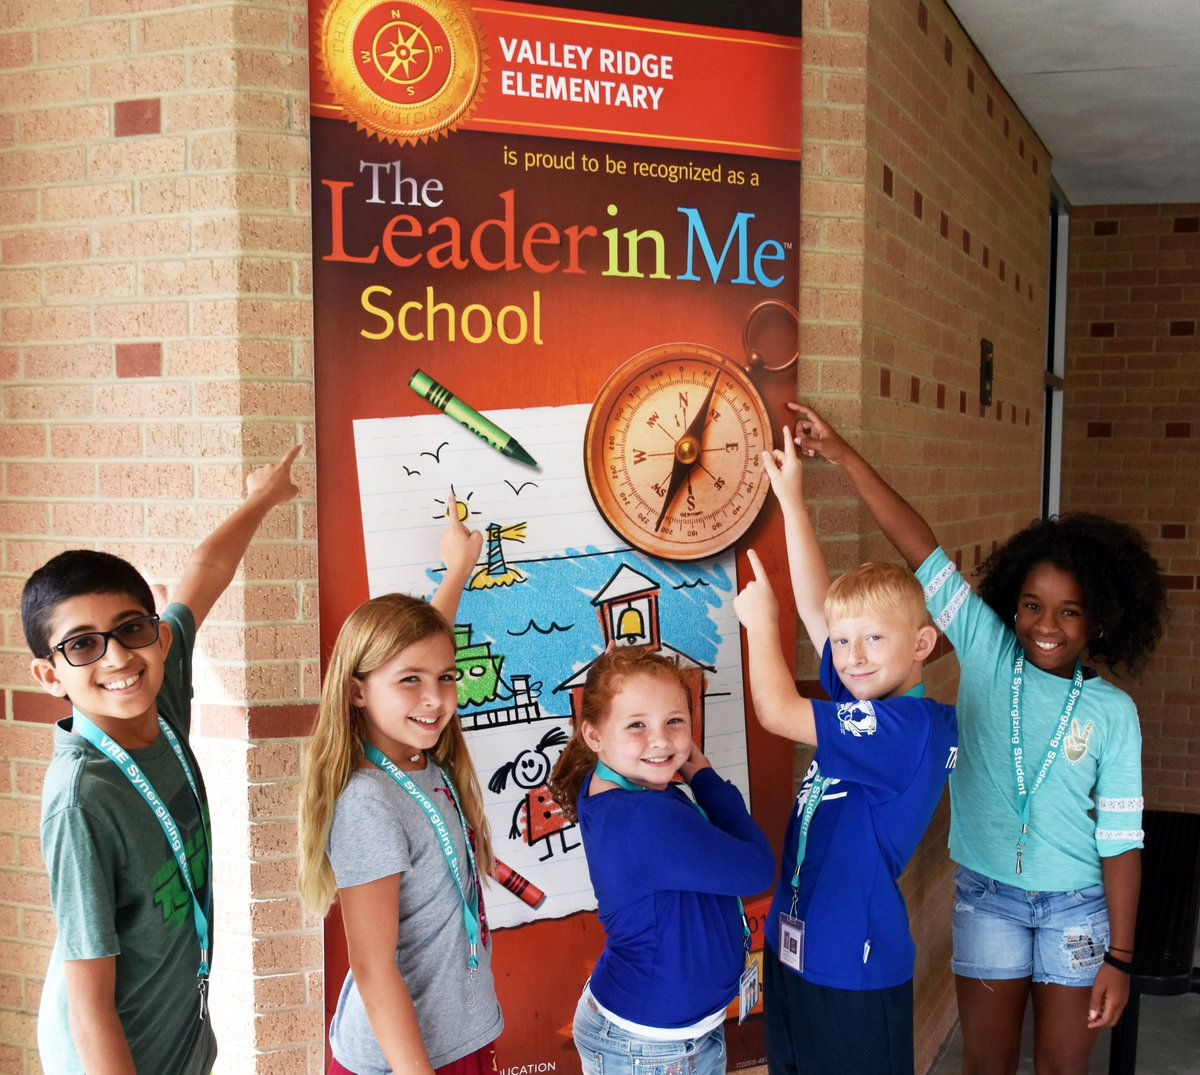 Numerous Valley Ridge Elementary students setting positive examples, taking ownership of school:  http:// bit.ly/2io8zaI  &nbsp;  . #VREjags #leaders <br>http://pic.twitter.com/cIbf742AP0